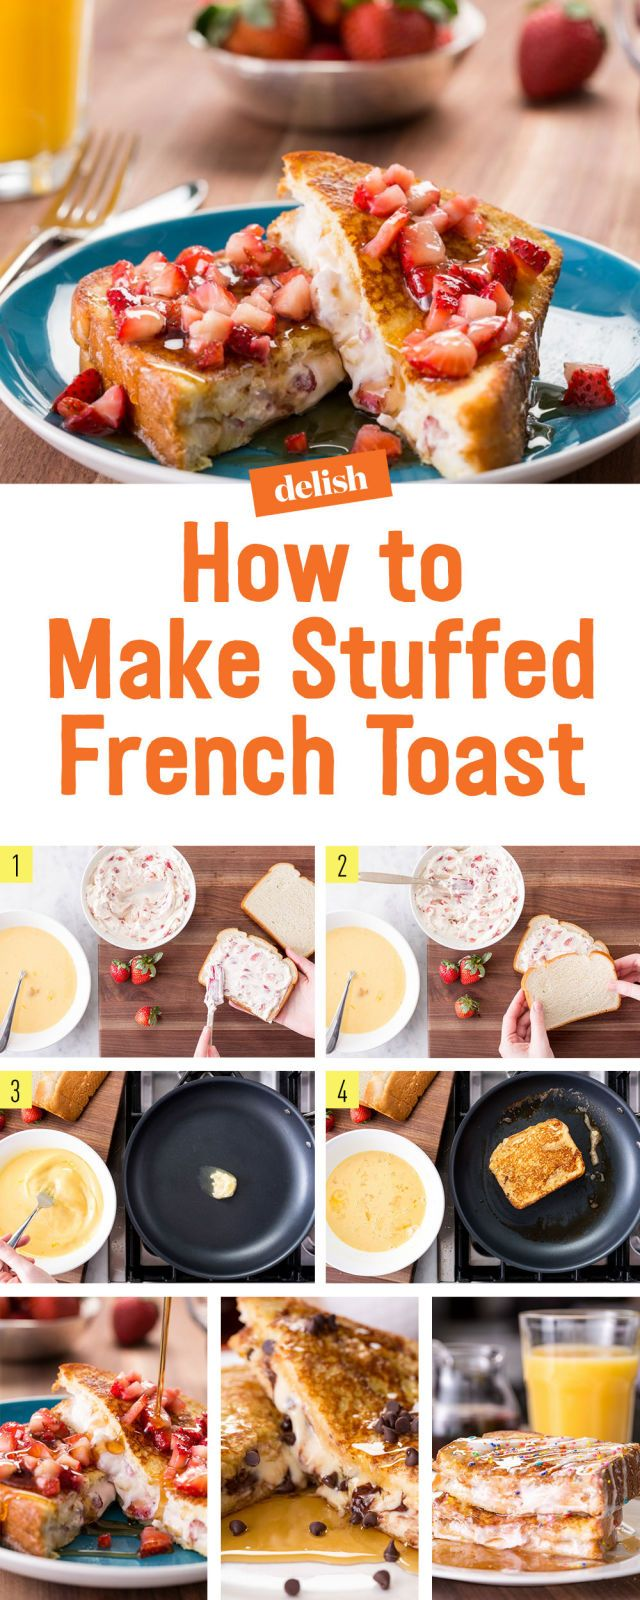 Here's+The+Right+Way+To+Make+Stuffed+French+Toast  - Delish.com